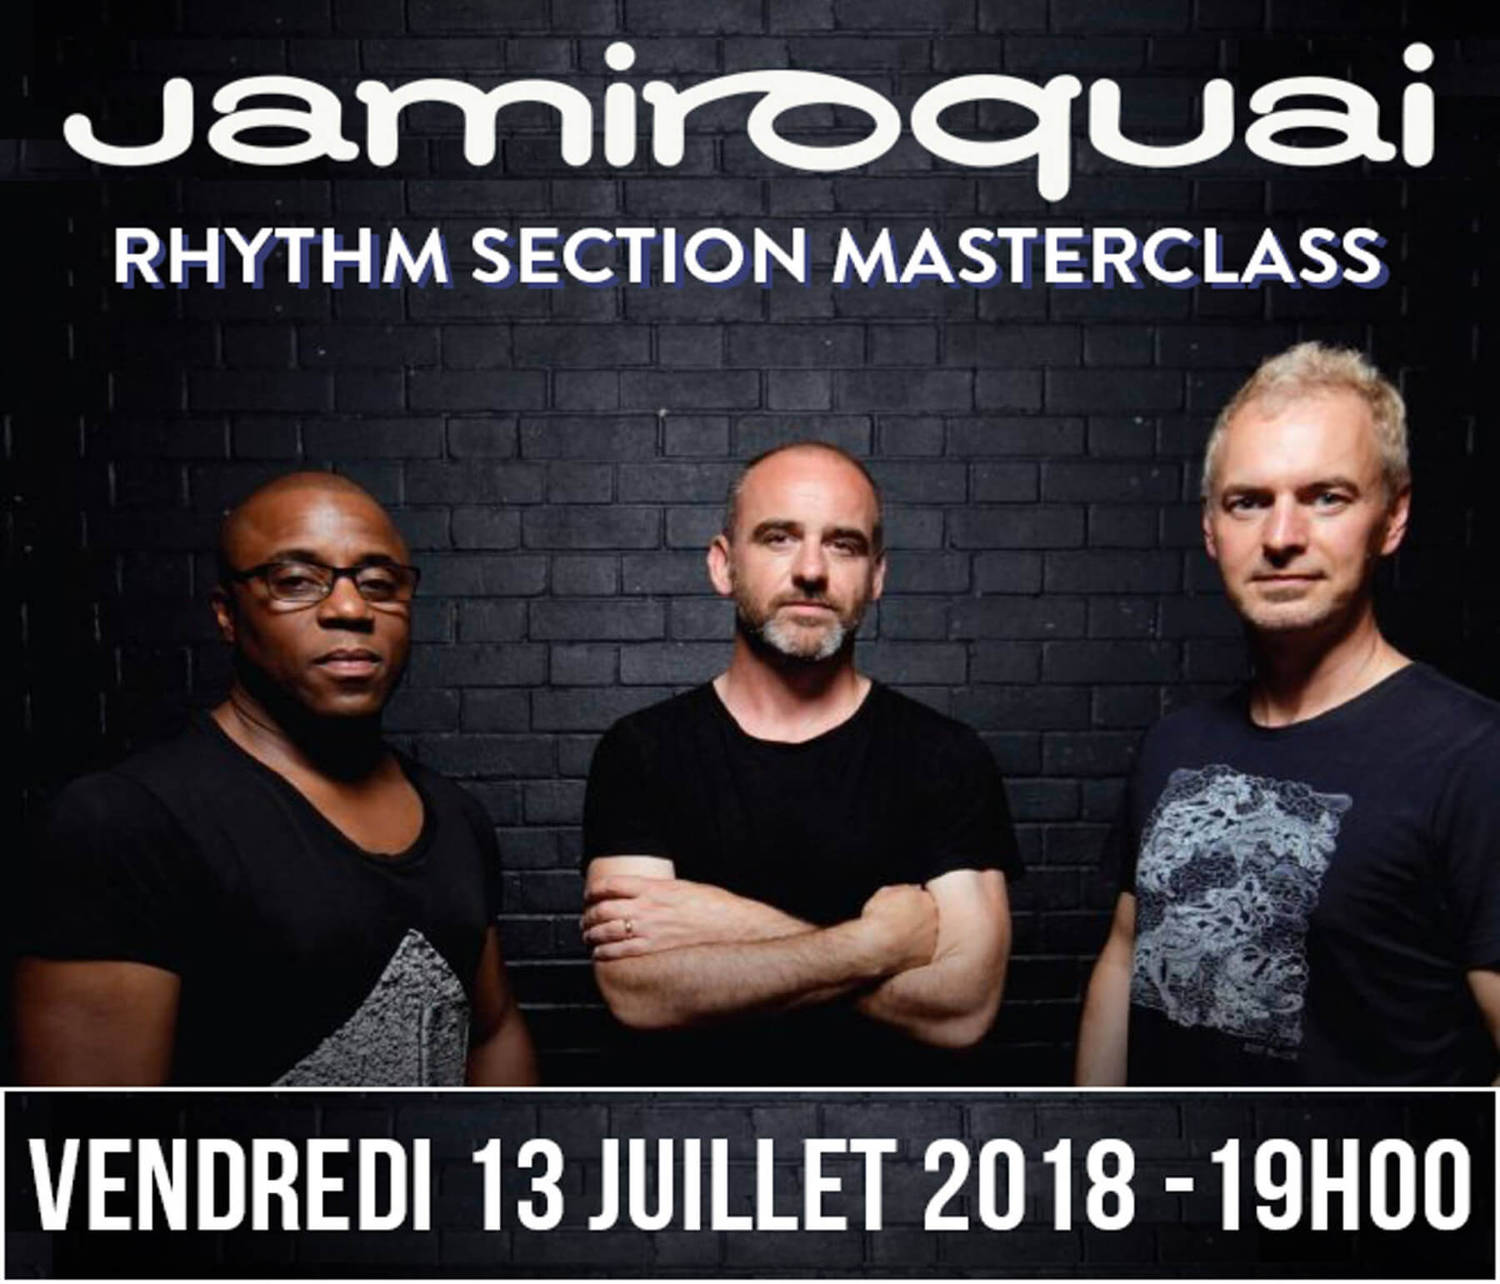 Jamiroquai Rhythm Section Masterclass